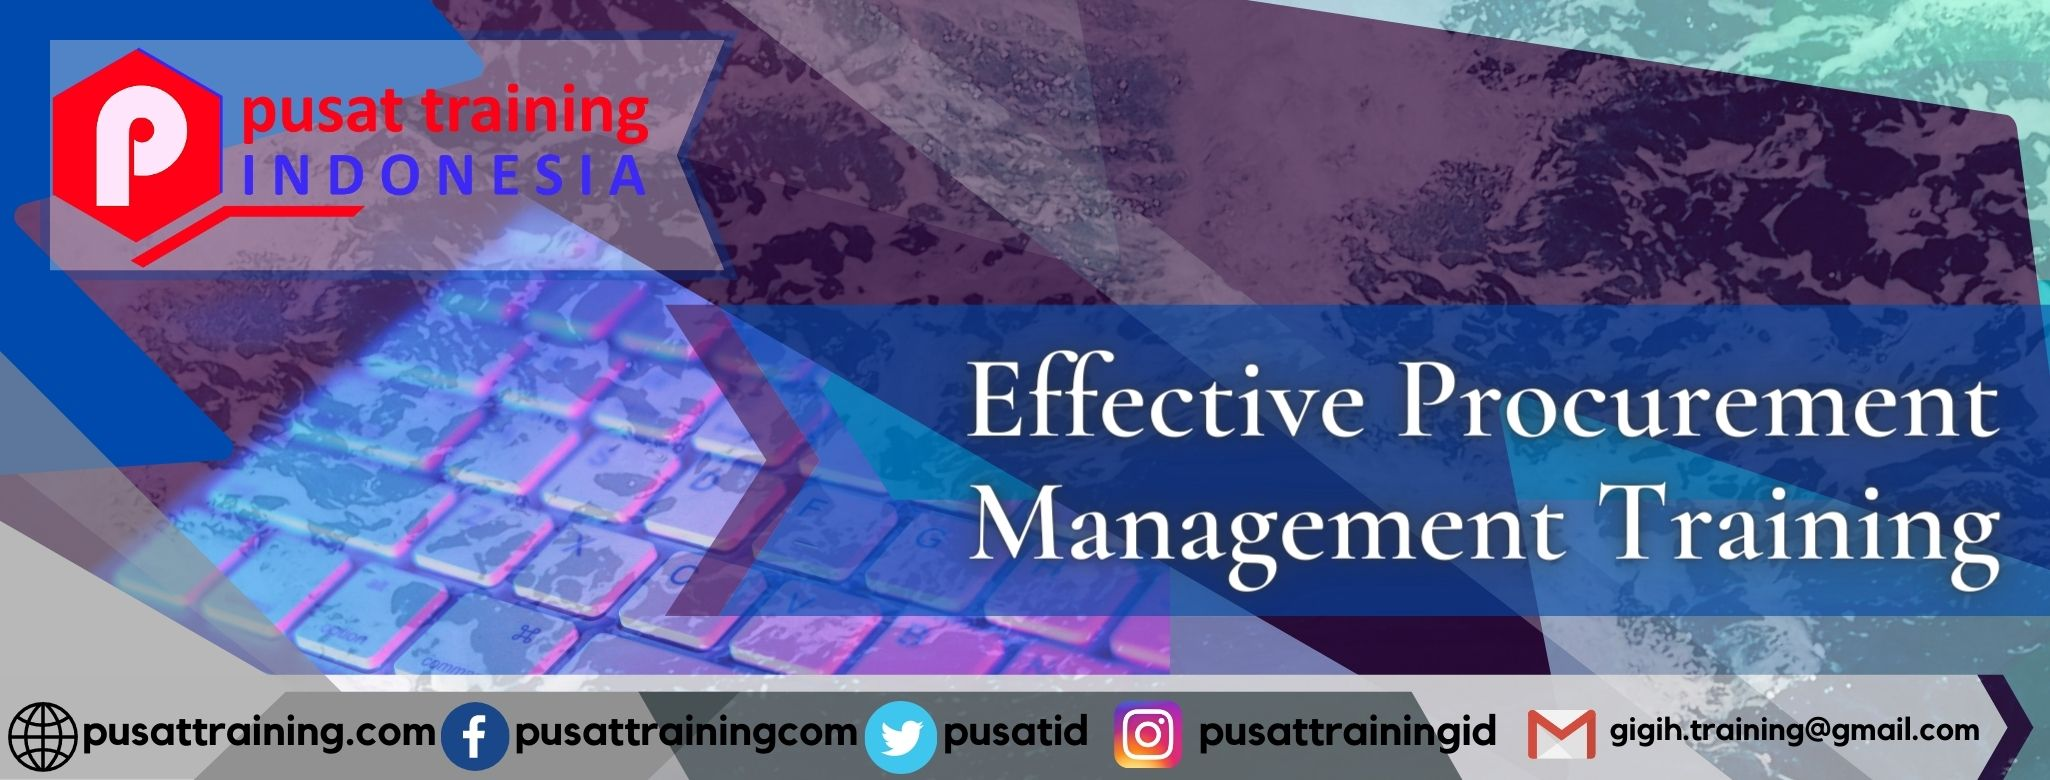 Effective Procurement Management Training